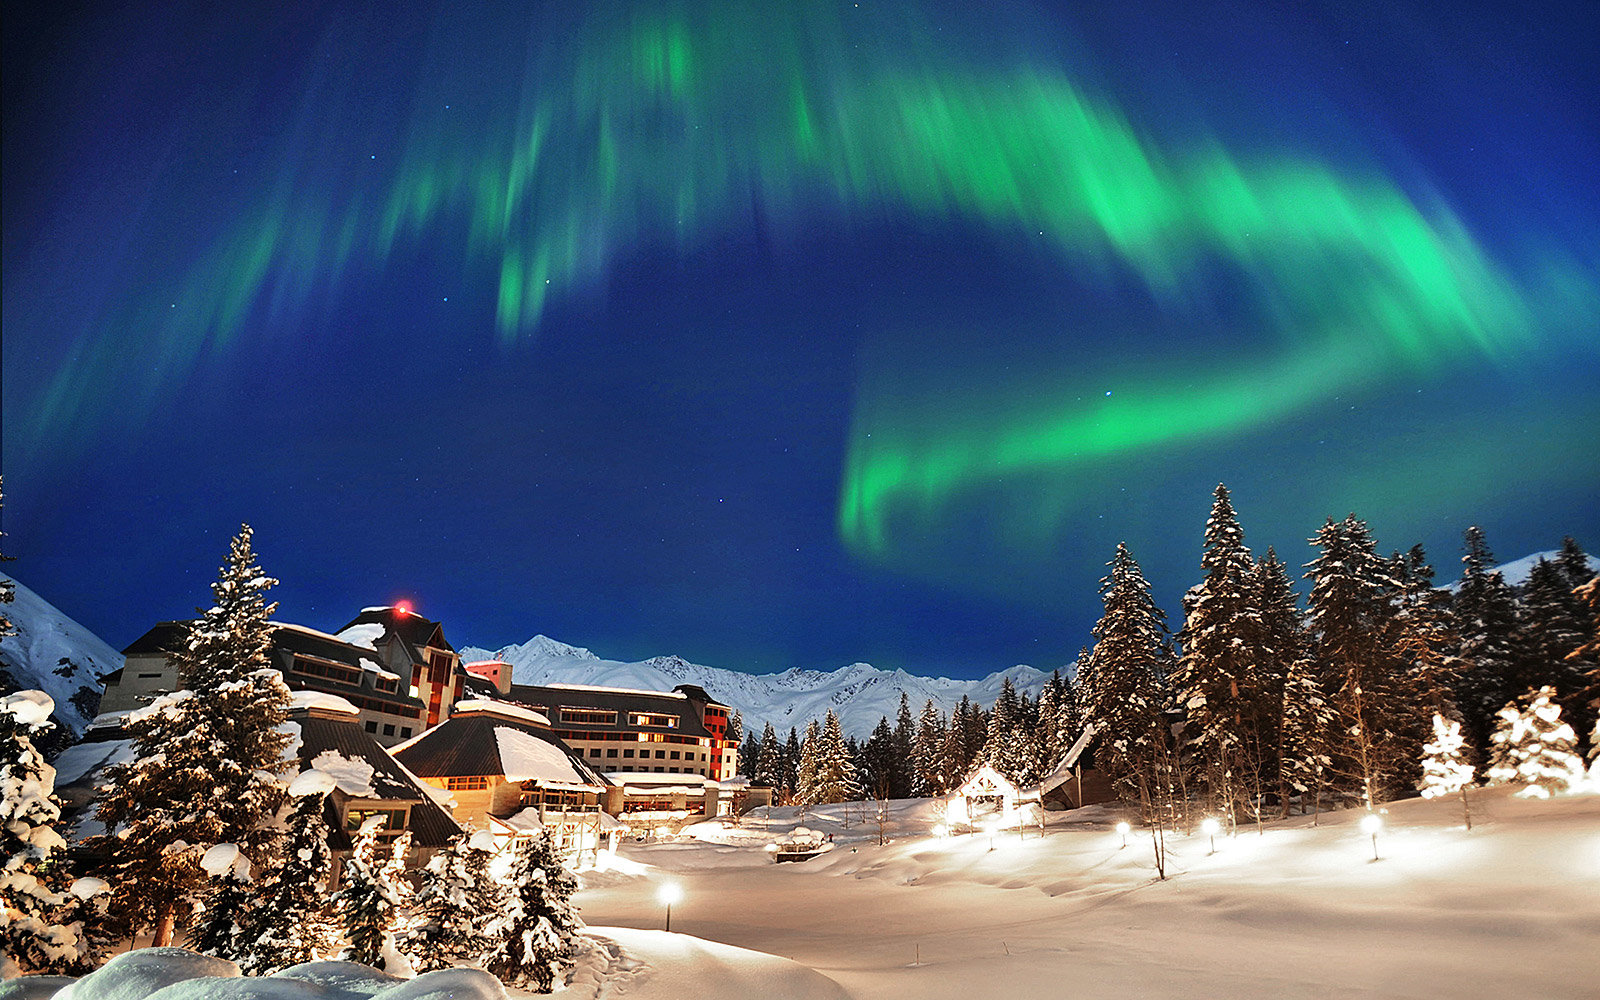 Alyeska Resort in Alaska